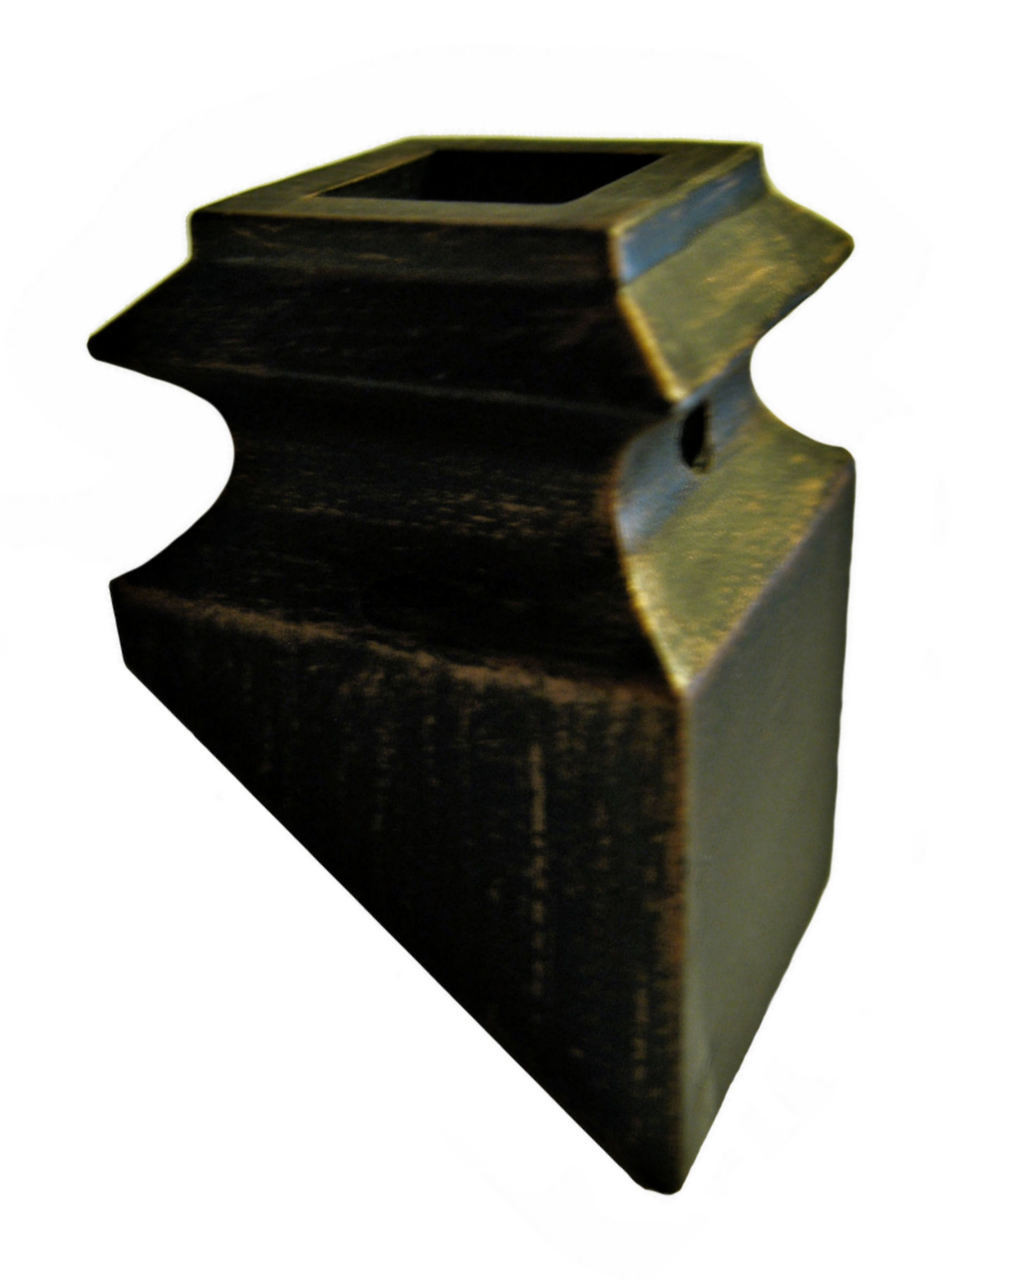 SH905 Slanted Shoe for Hammered Balusters (Rubbed Bronze pictured)